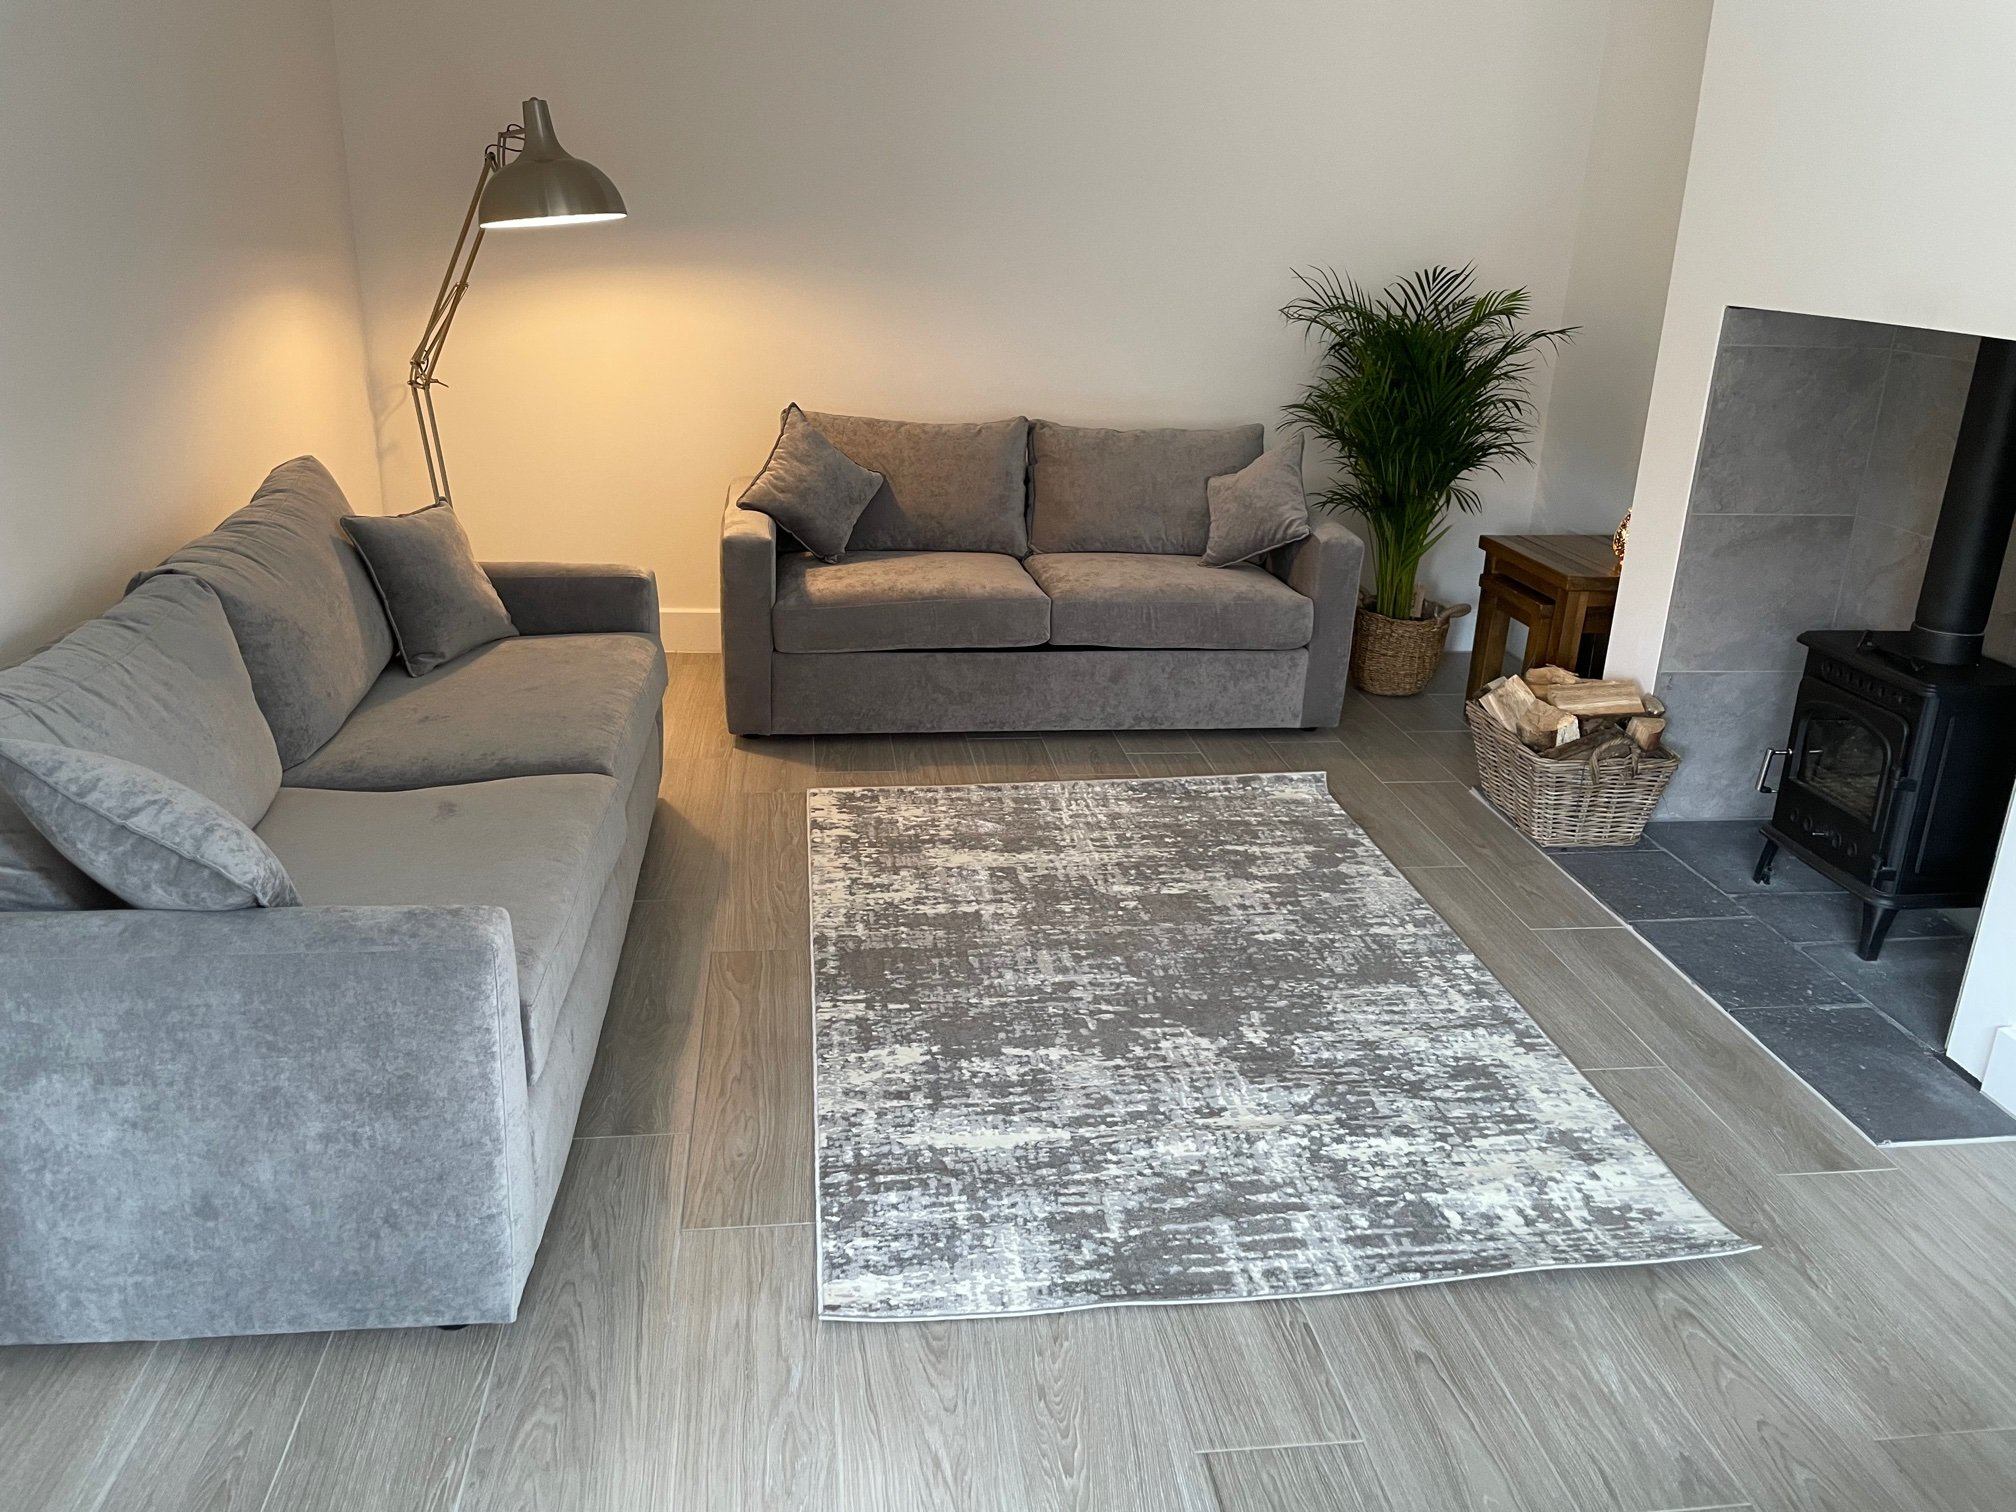 Sofas and sofa beds in customers home image 1